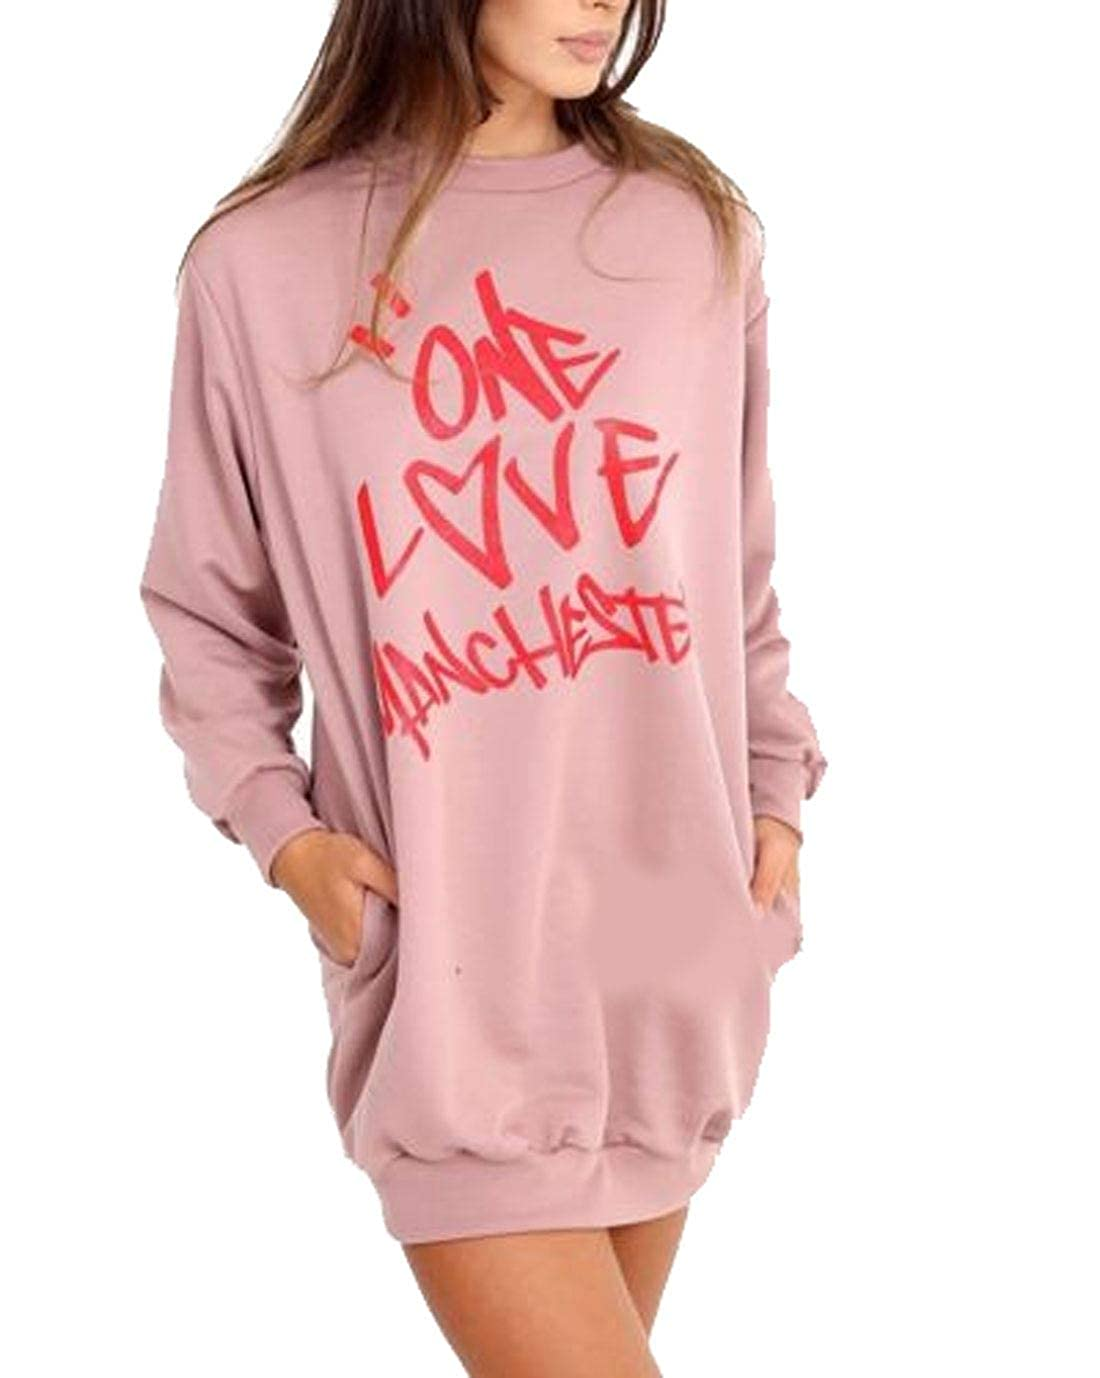 One Love Manchester Print Sweatshirt Womens Long Sleeve Celebrity Shirt Top